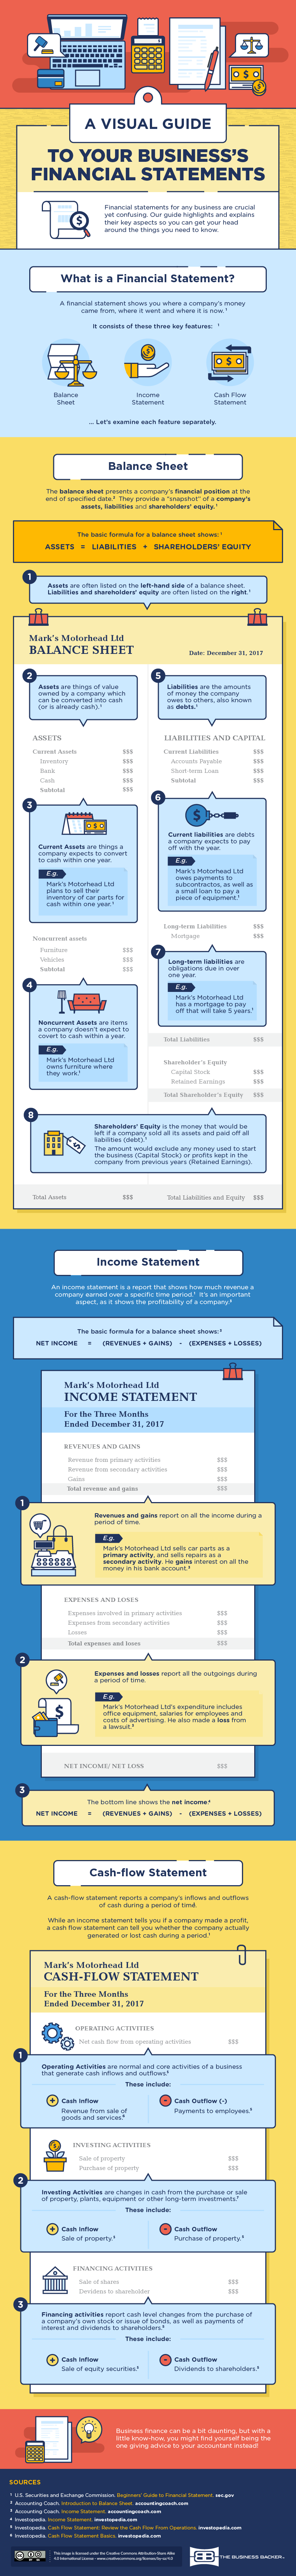 3 essential financial reports for your small business bookkeeping infographic that helps small business owners understand their financial statements balance sheet pl solutioingenieria Choice Image